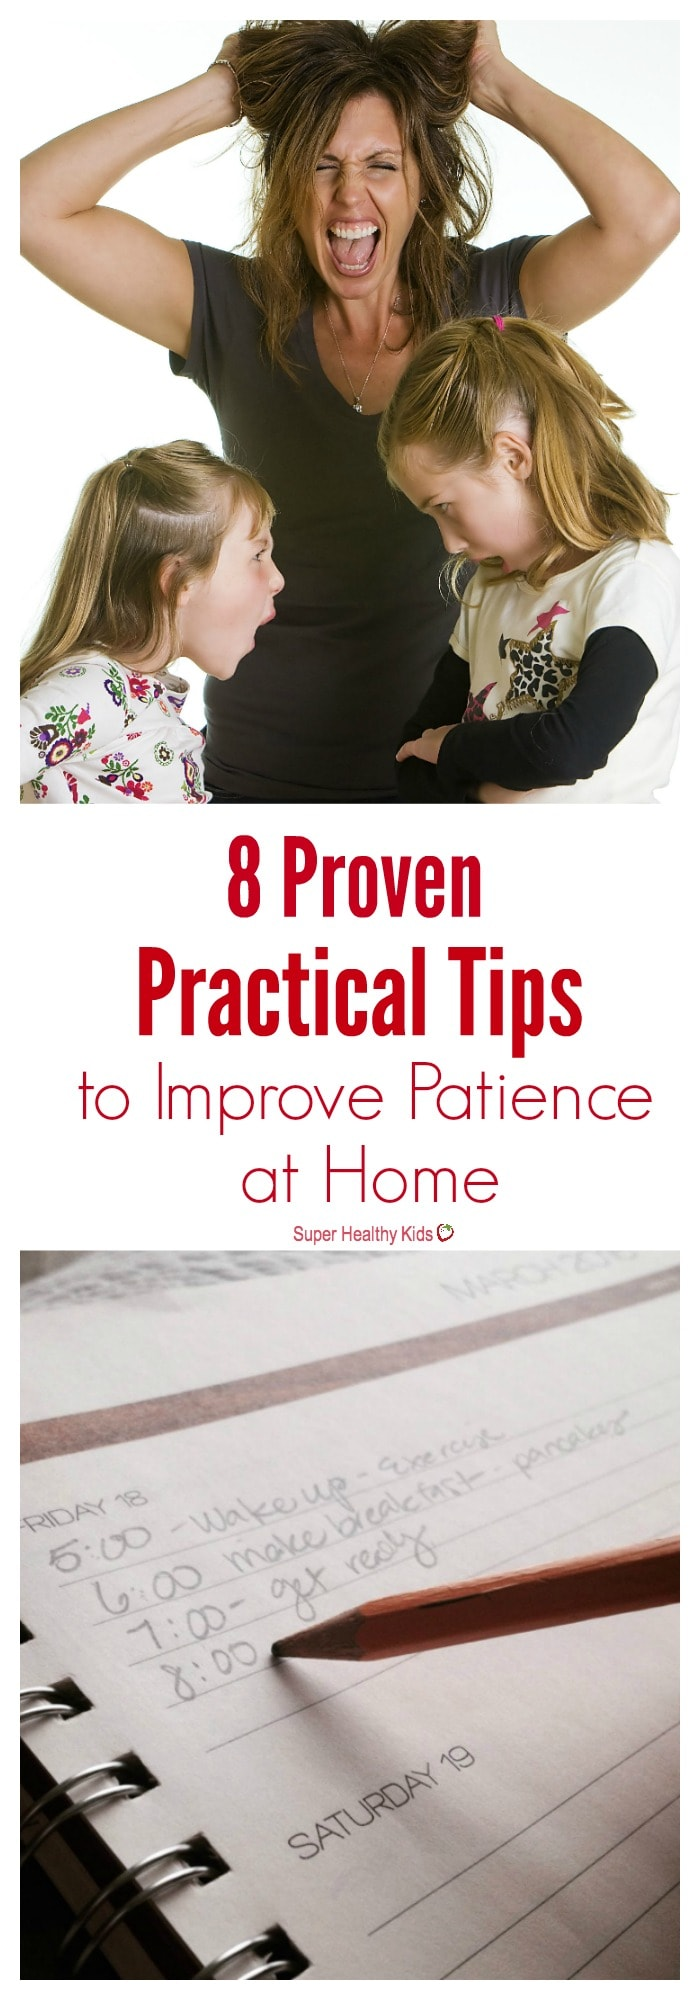 MOM TIPS - 8 Proven, Practical Tips to Improve Patience at Home. If you feel like you often lose your patience with your kids, these 8 proven and practical tips will help you have a calmer home life. http://www.superhealthykids.com/8-proven-practical-tips-improve-patience-home/